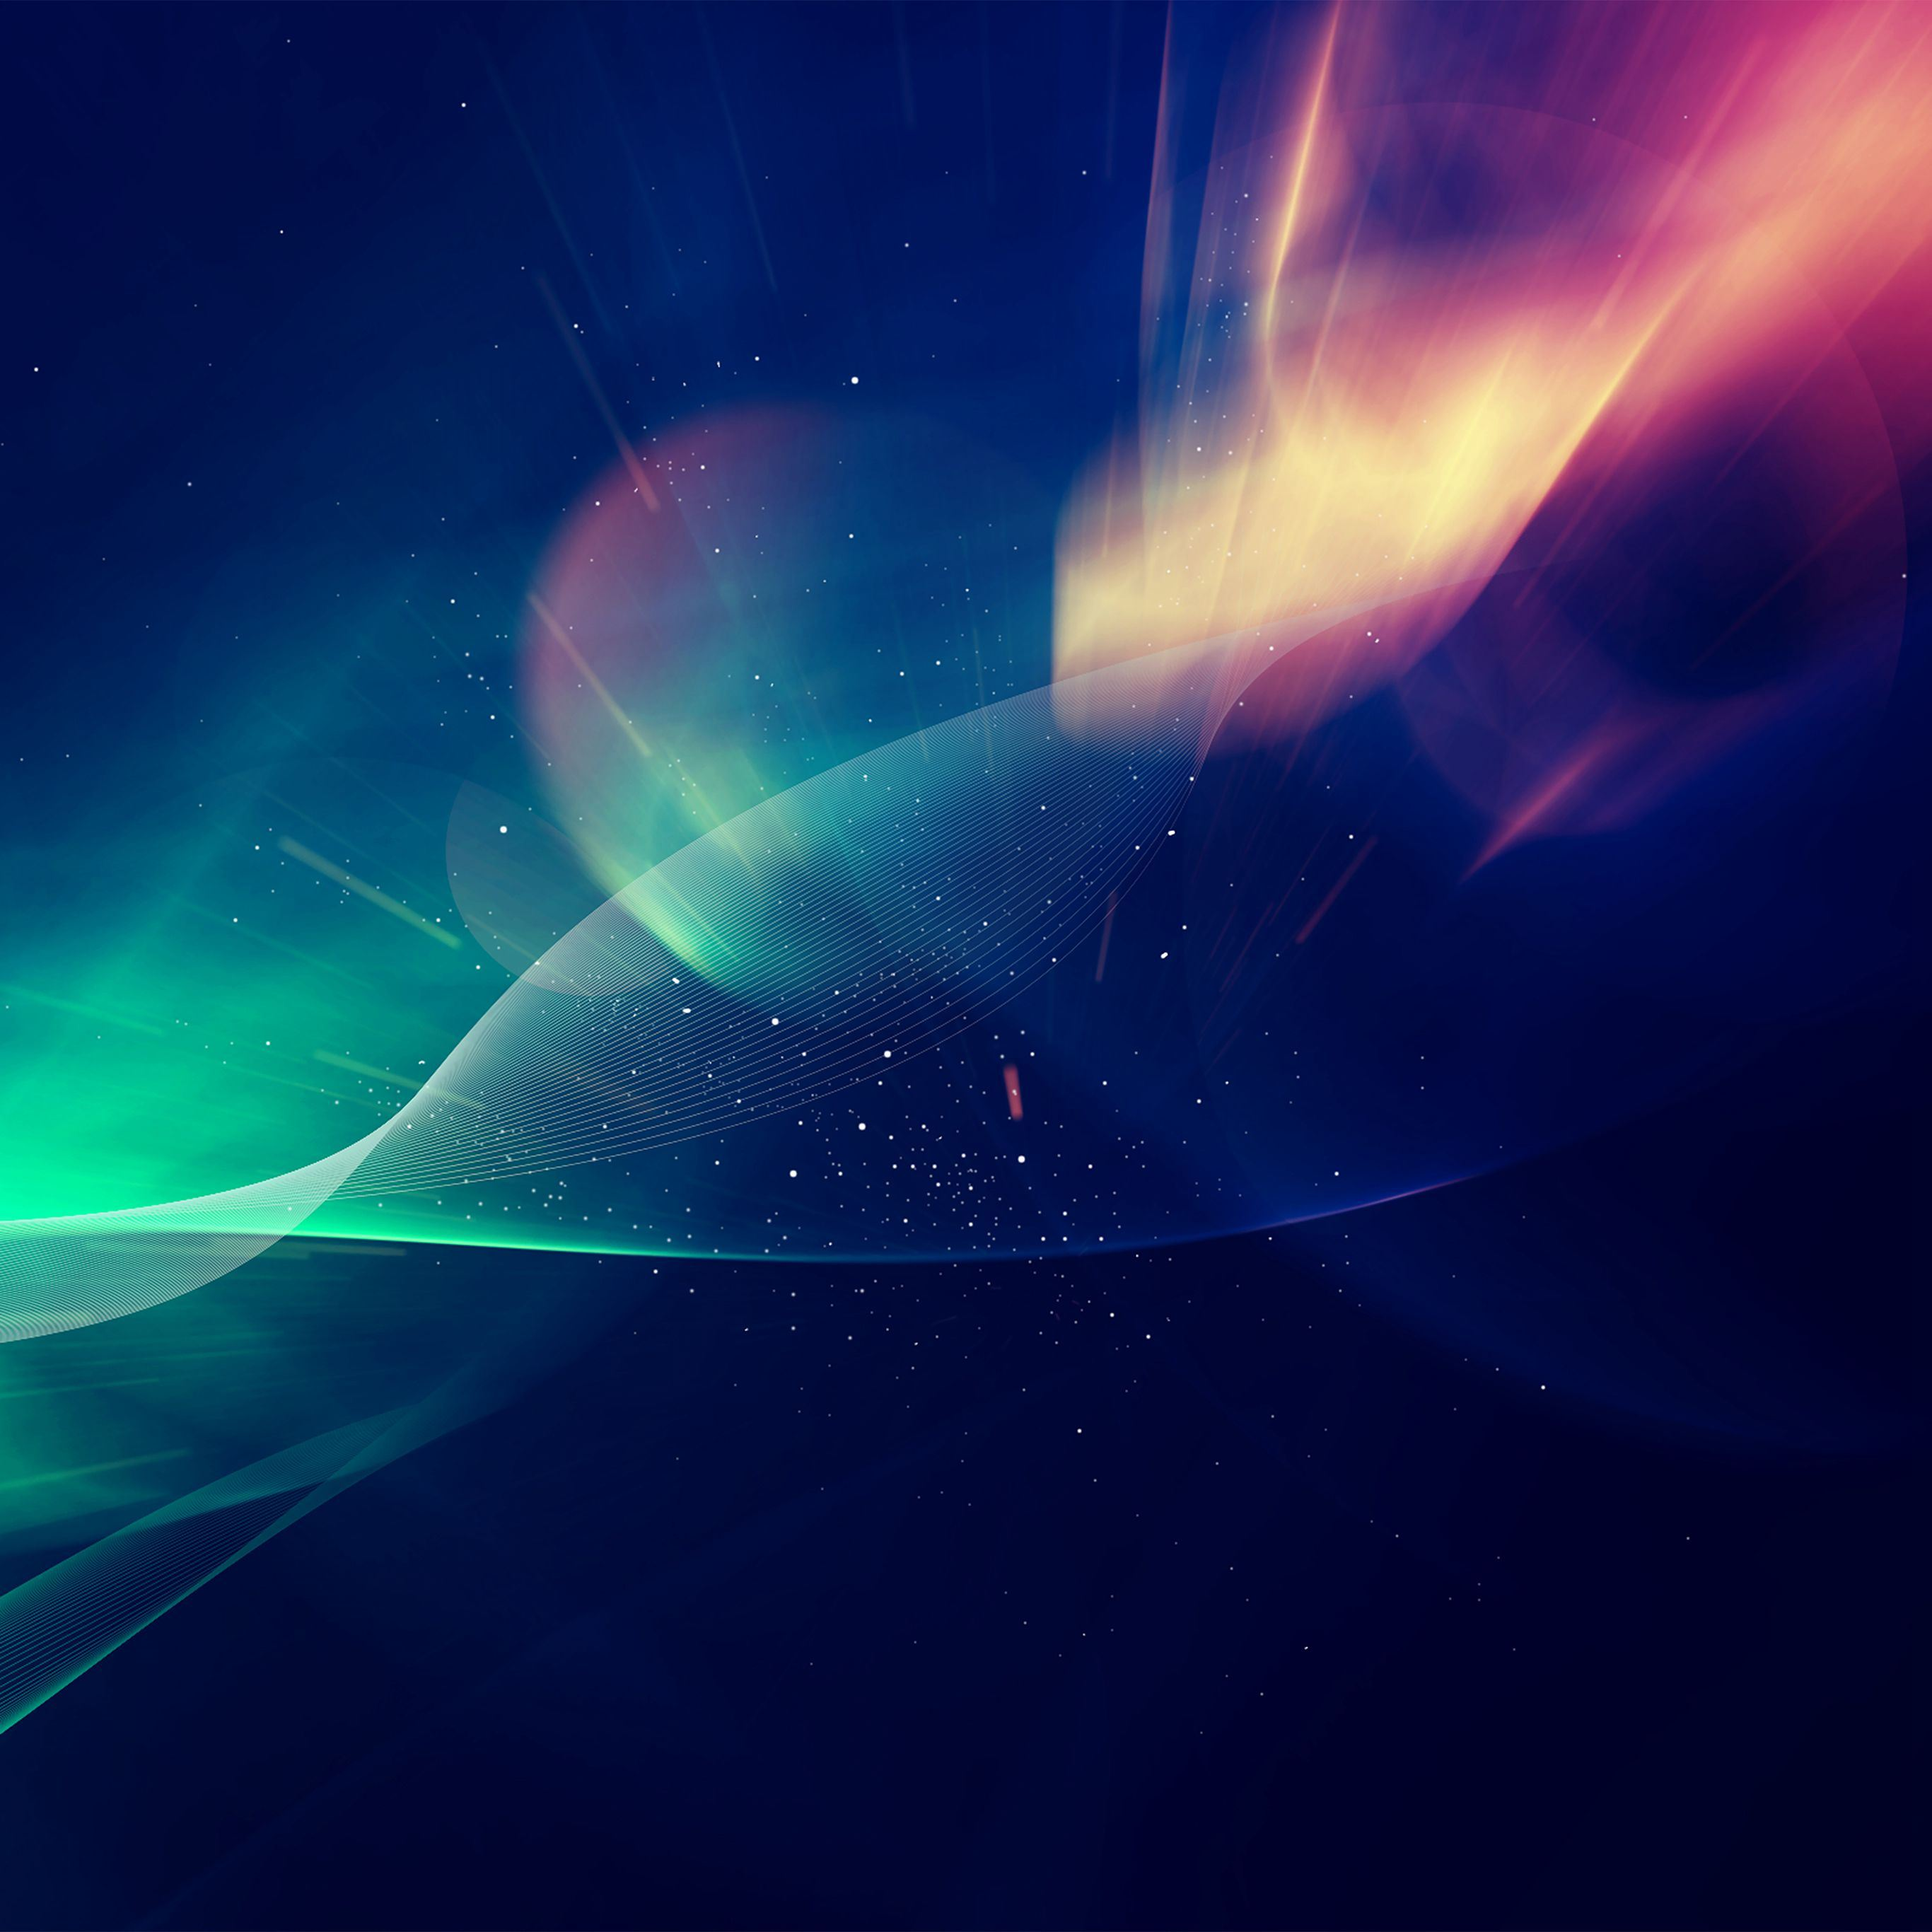 Abstract Lights Vector Ipad Pro Wallpapers Free Download